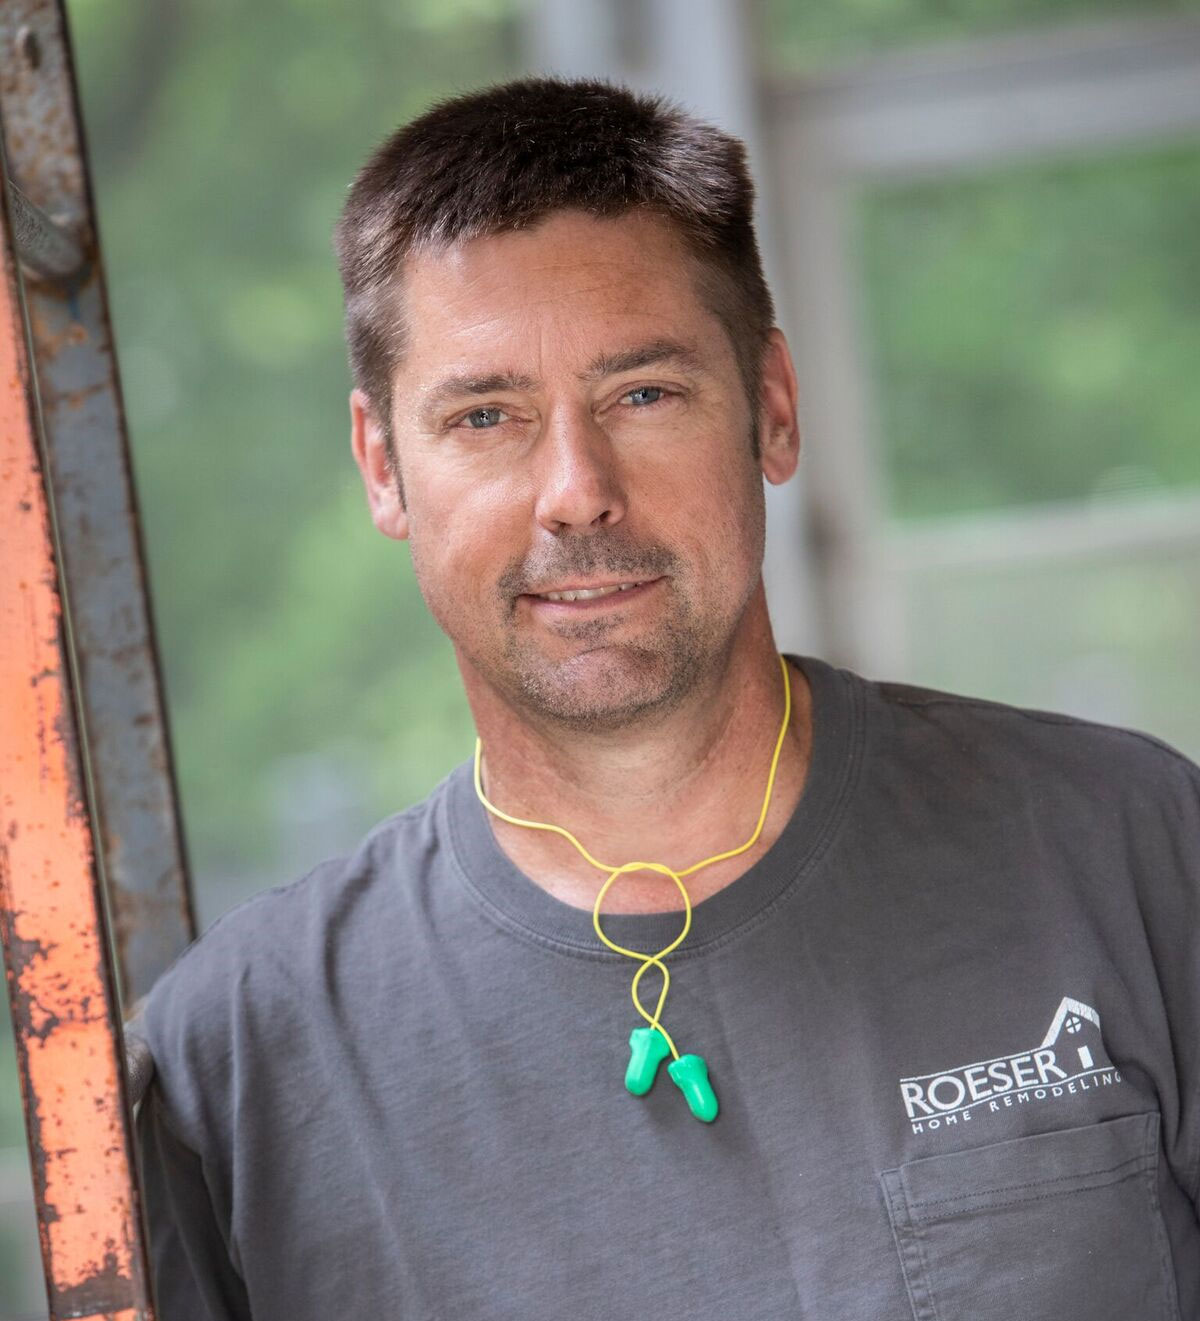 Steve Lauer Roeser Home Remodeling St Louis